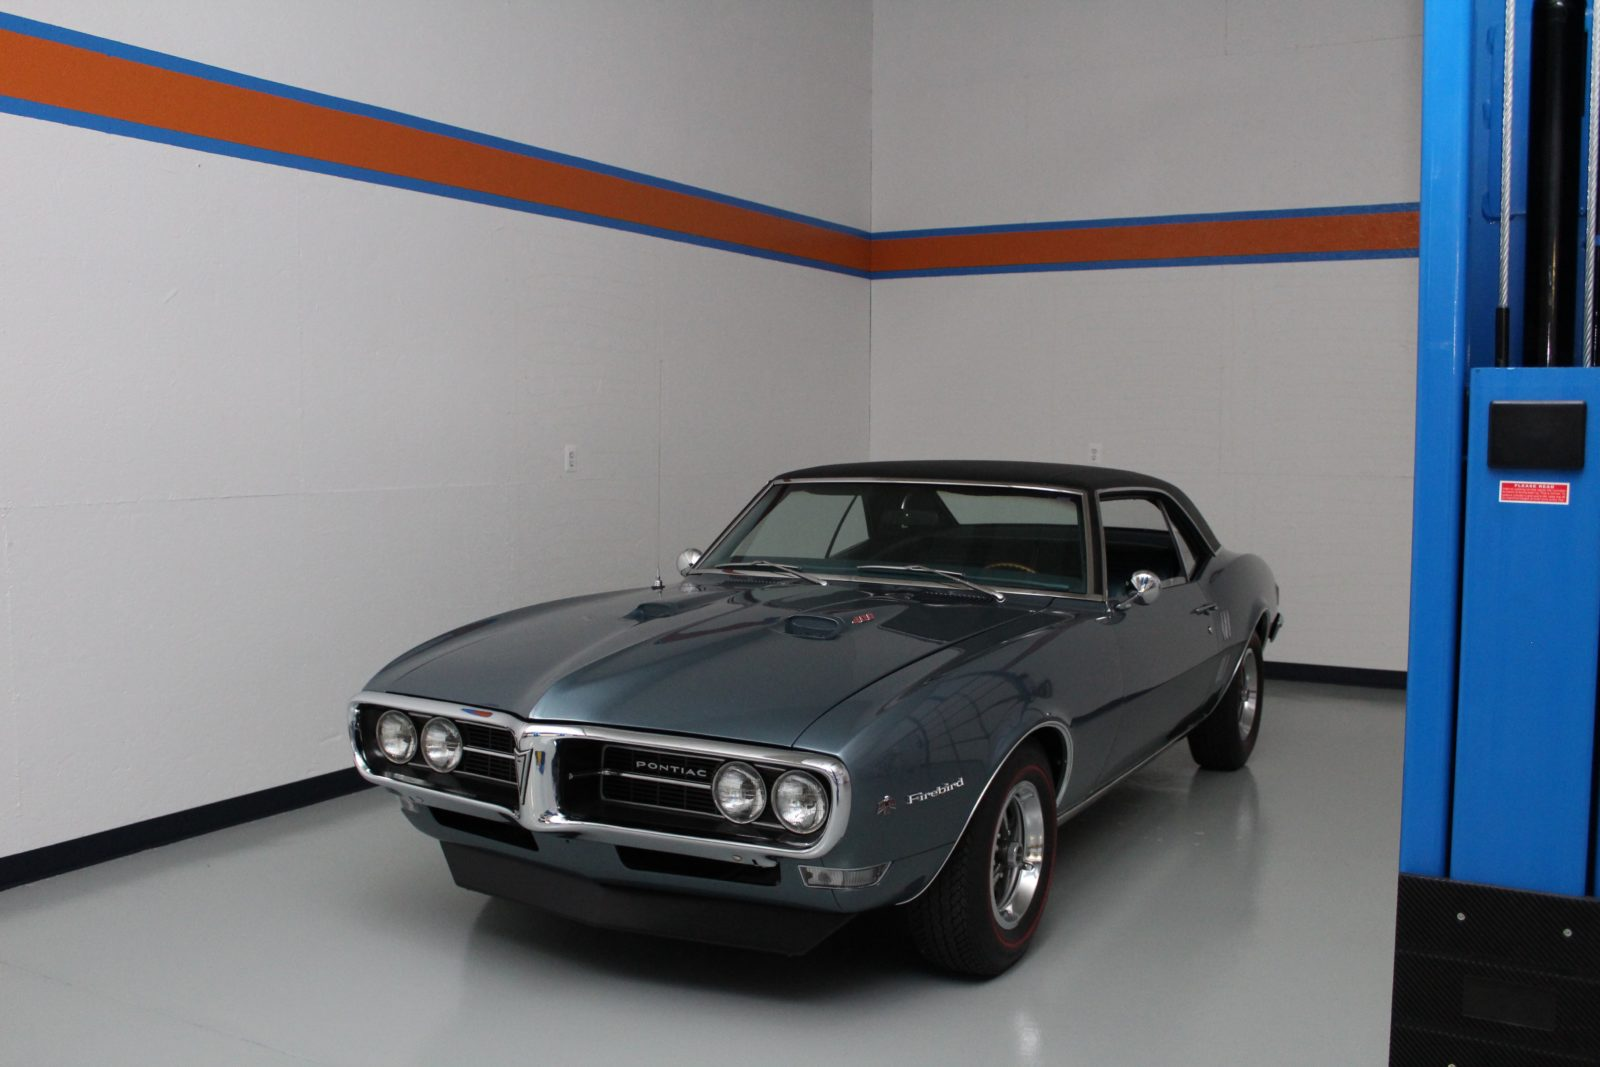 1968 pontiac firebird 400 mid atlantic classic cars. Black Bedroom Furniture Sets. Home Design Ideas